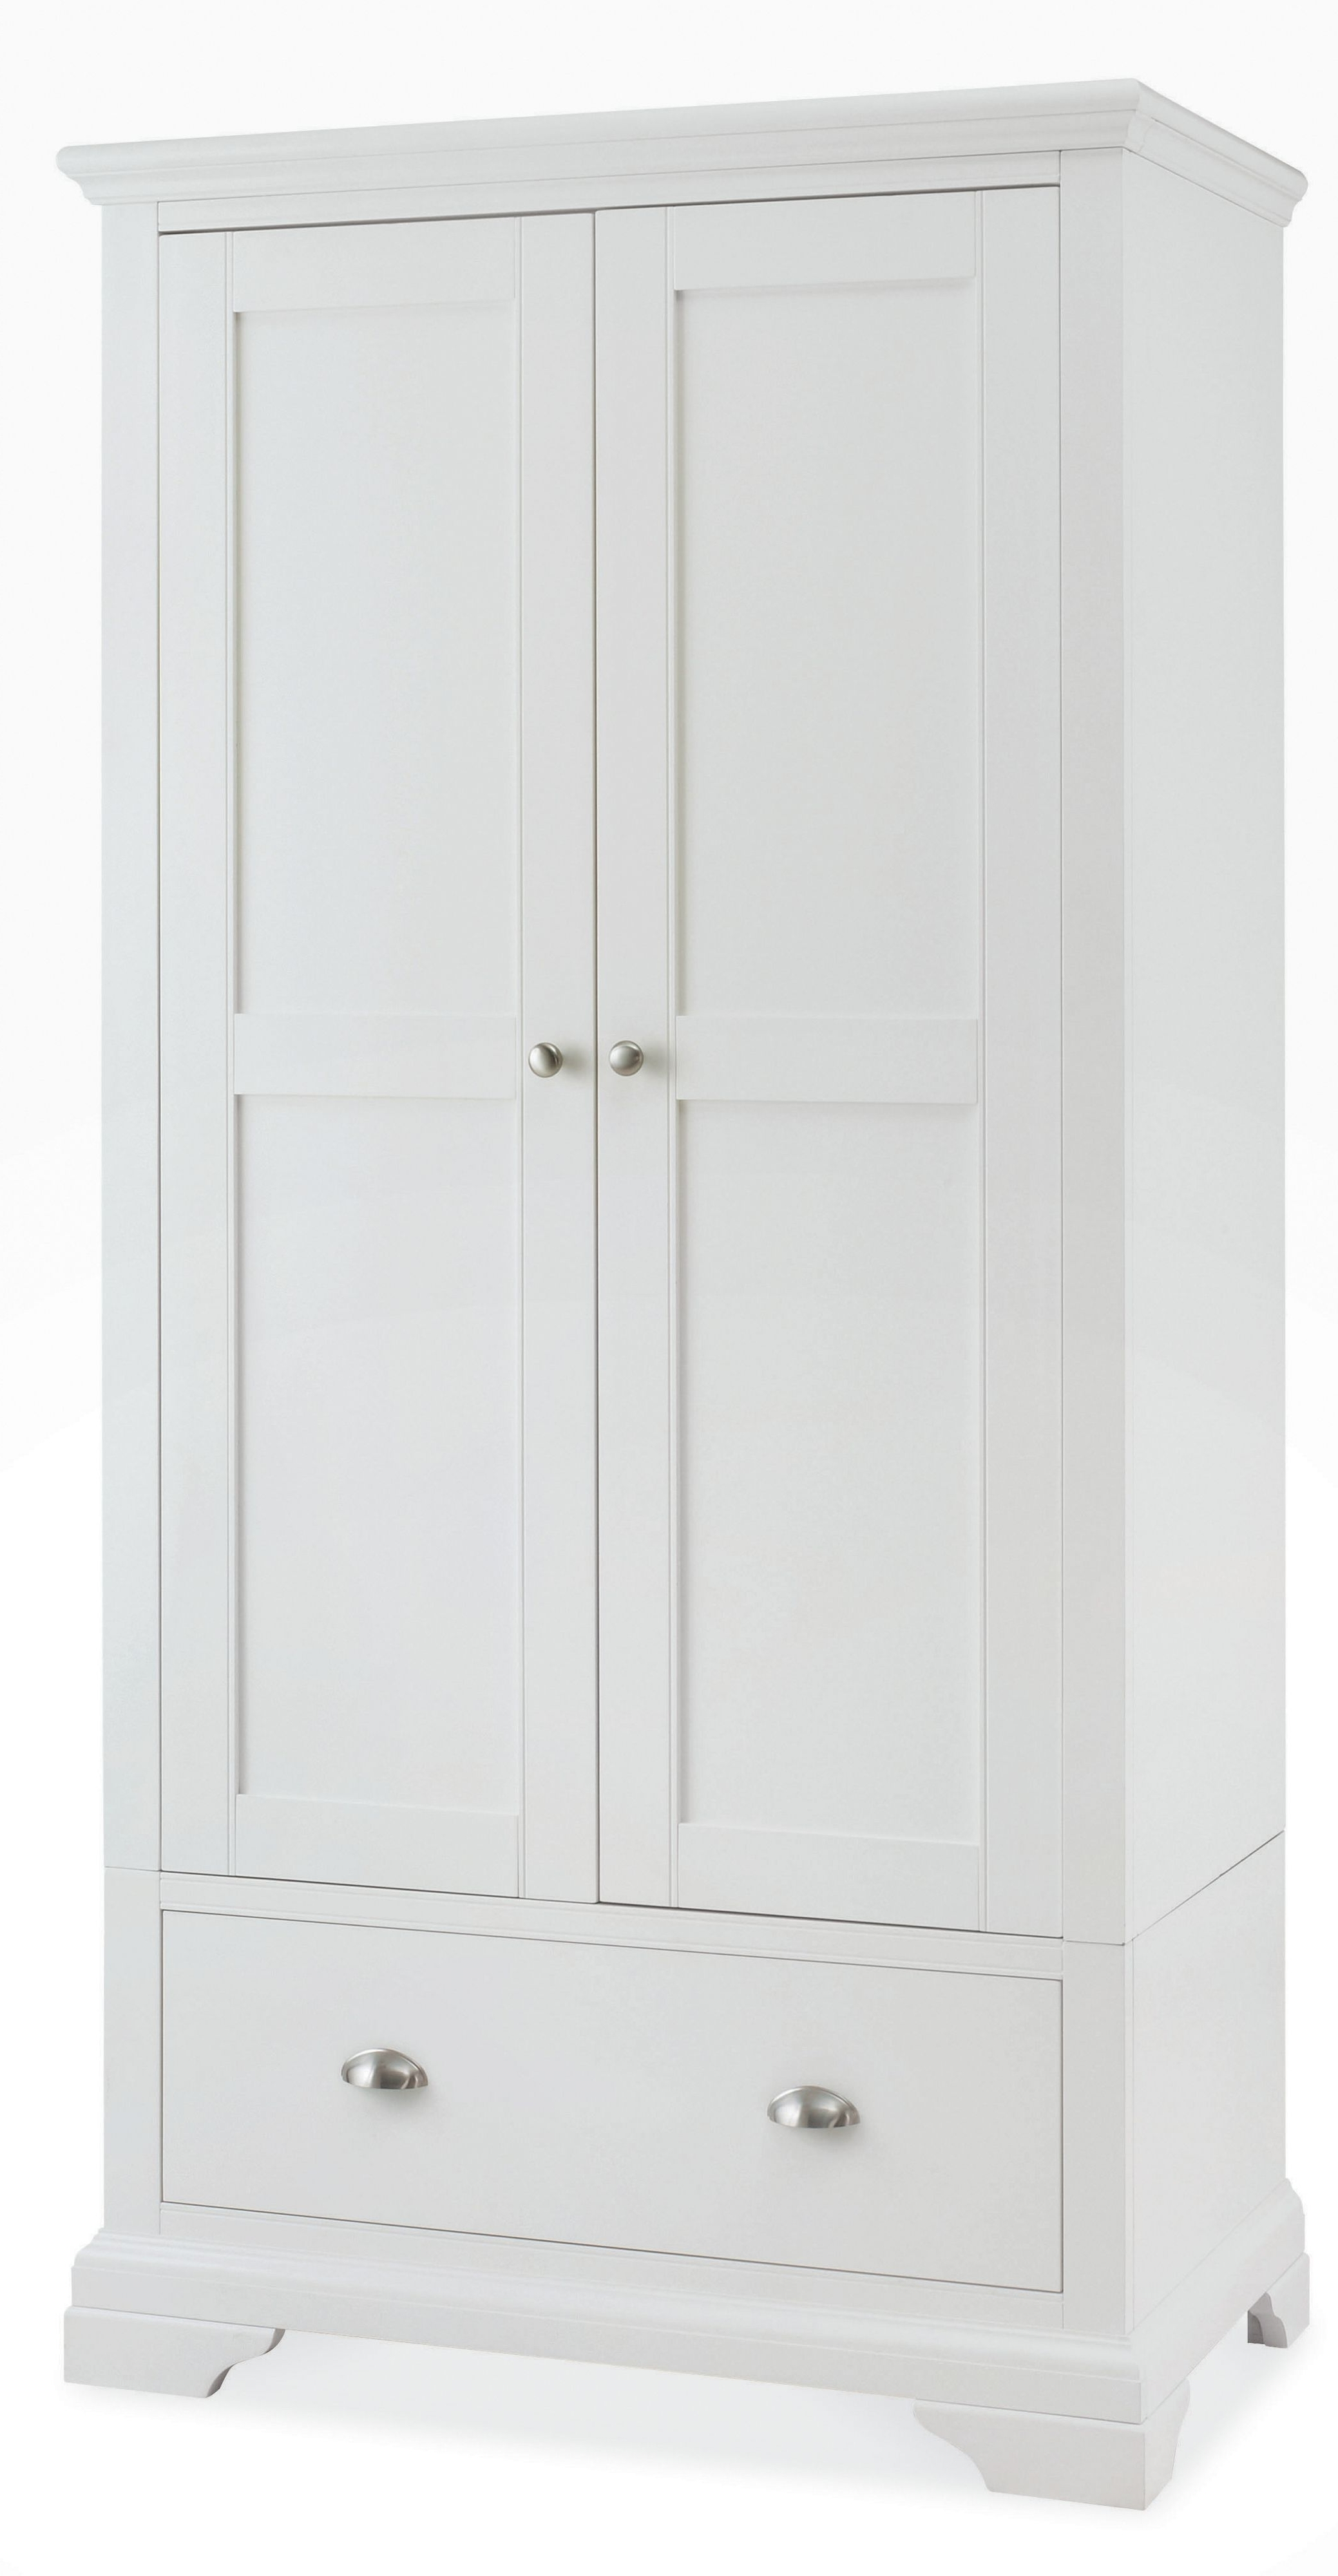 Single White Wardrobes For Most Popular Vintage White Wooden Wardrobe With Inside Shelves And Numerous (View 9 of 15)